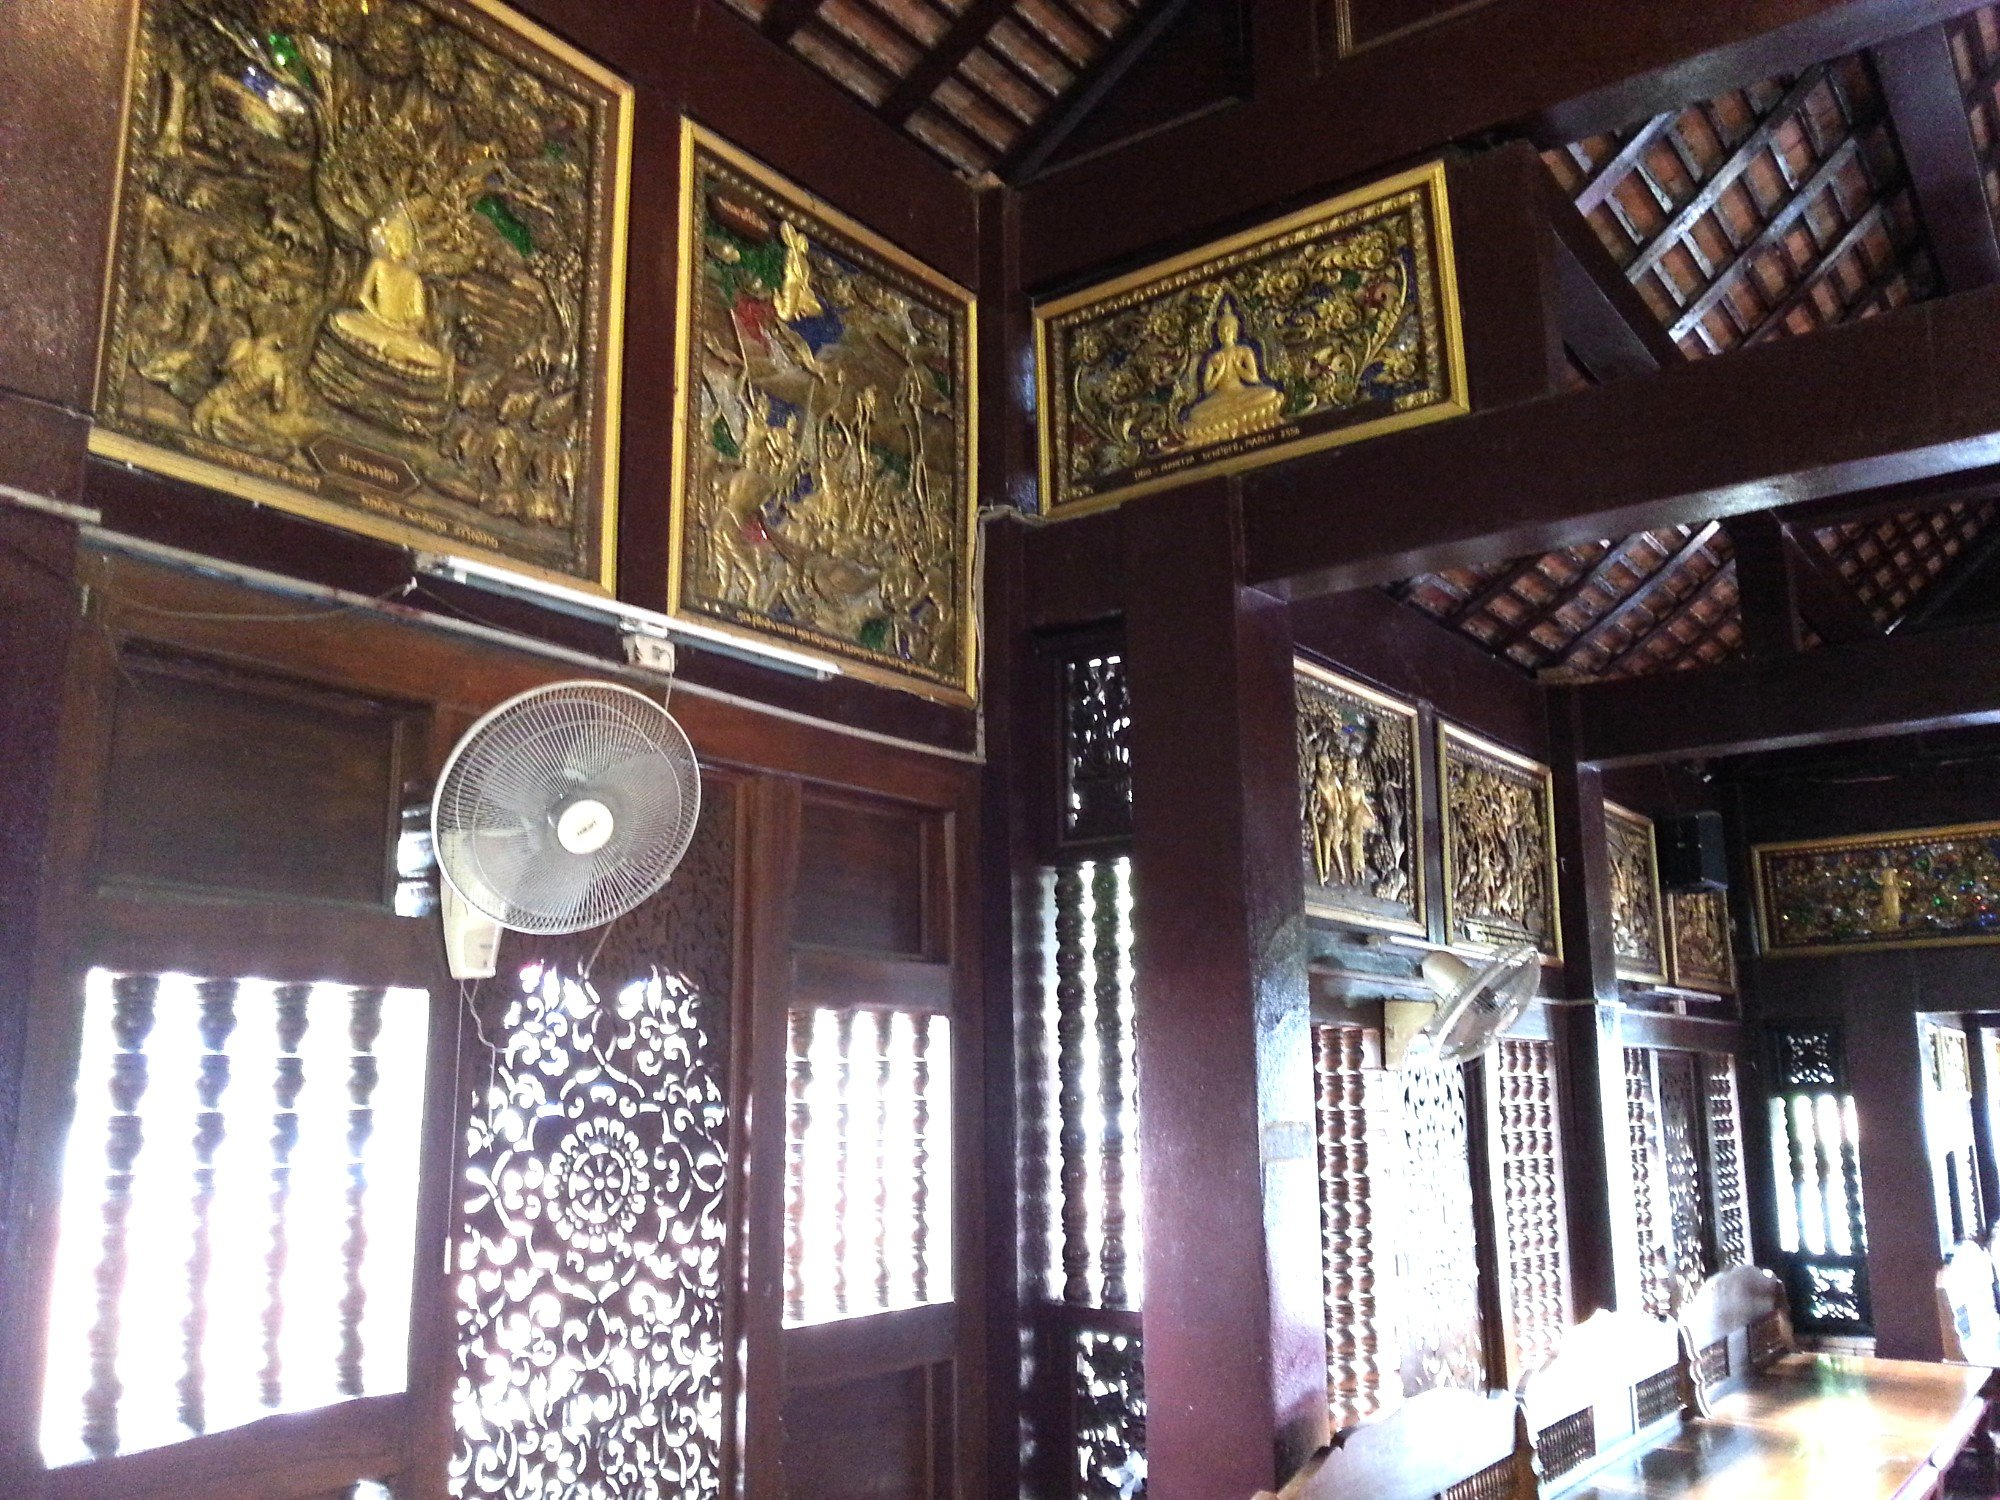 Intricate woodwork inside the assembly hall at Wat Lok Moli